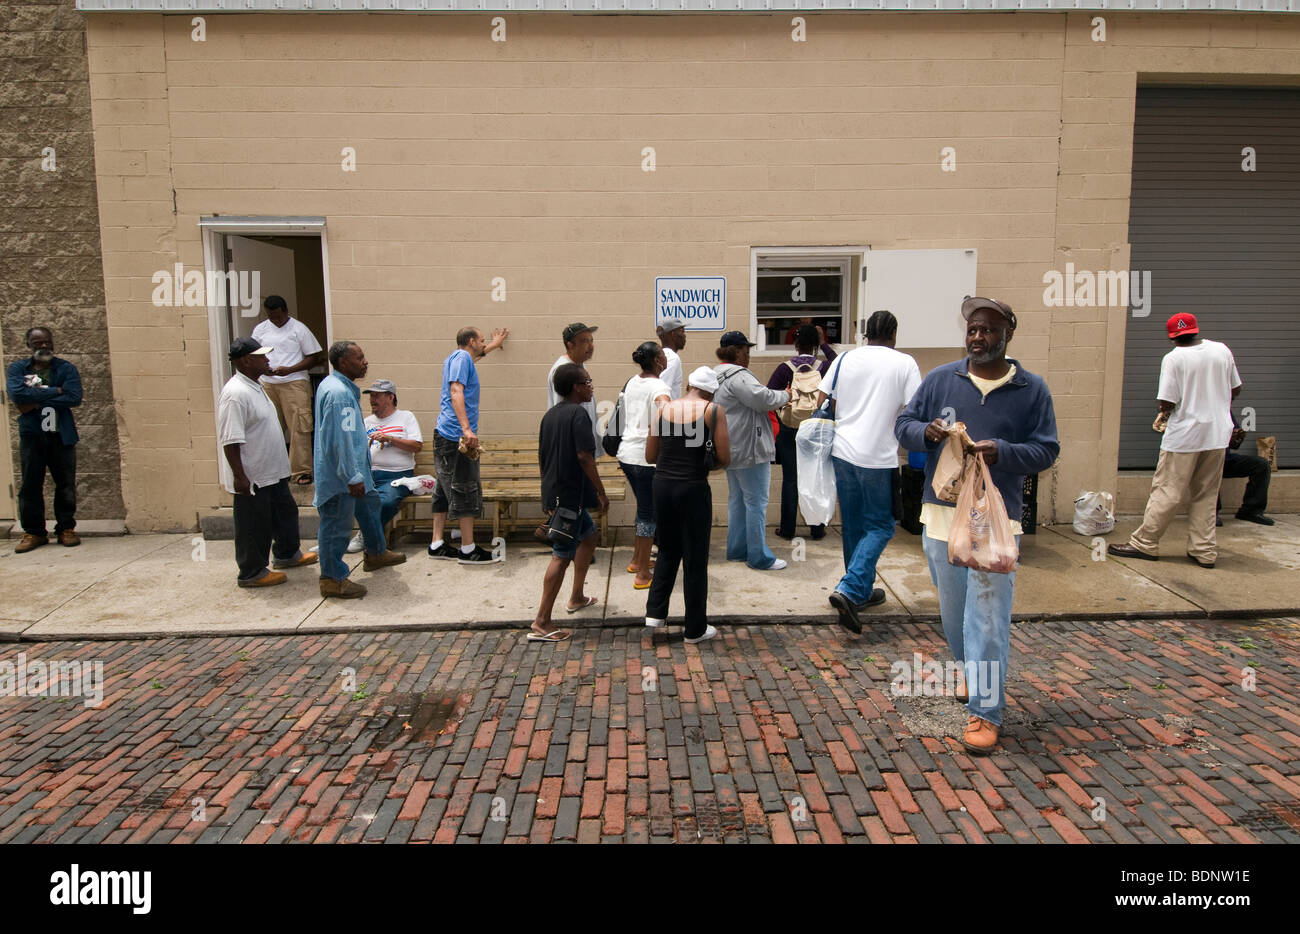 People queing at Sandwich window, Cincinnati, OH, Over the Rhine, area of redevelopment, - Stock Image